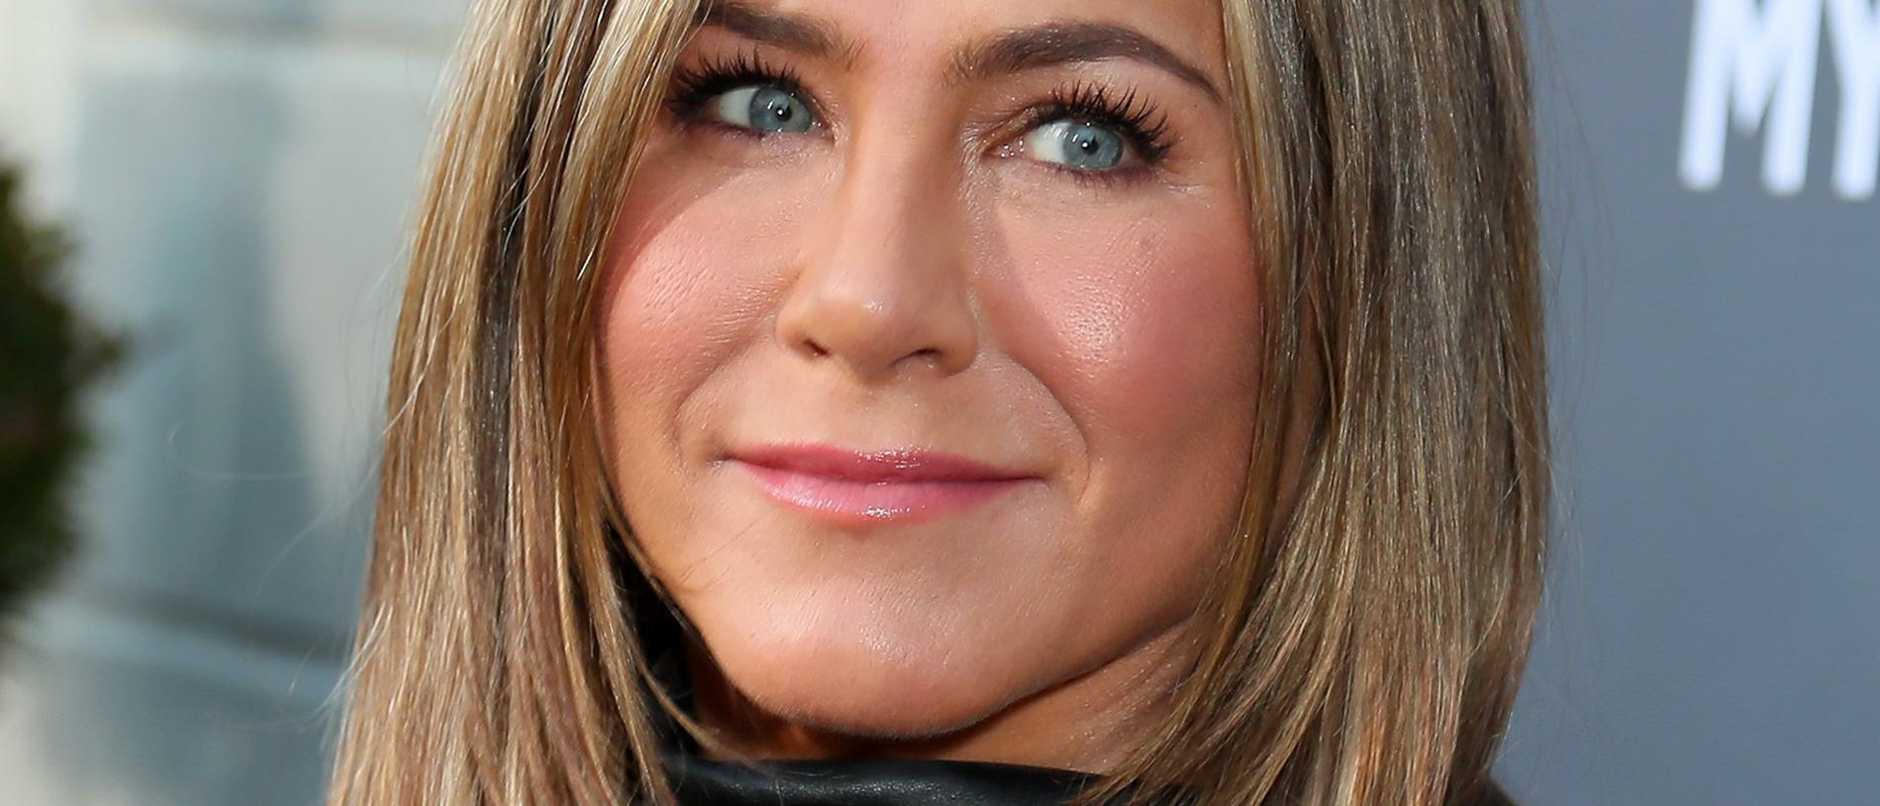 Jennifer Aniston will star in the new TV series Morning Wars.